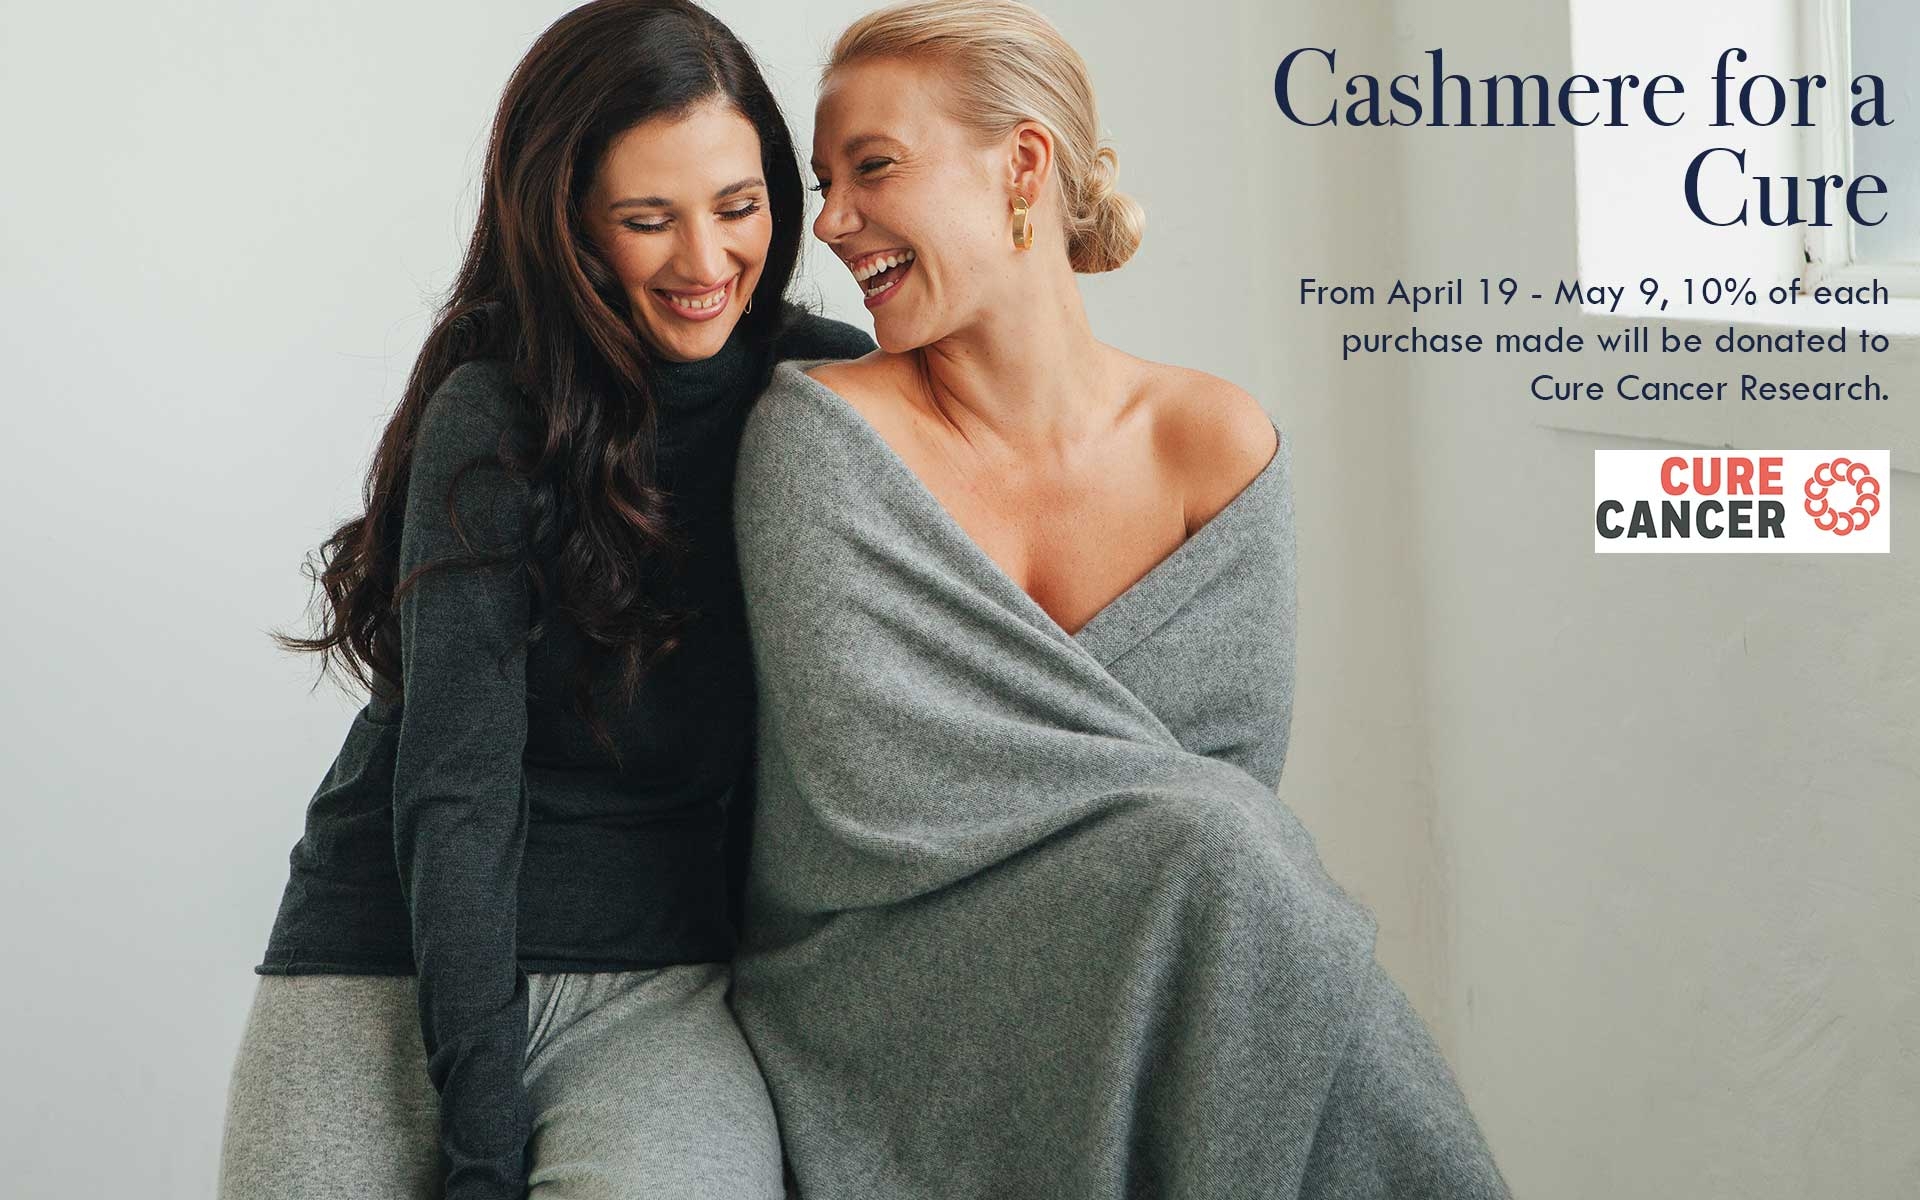 Cashmere for a Cure